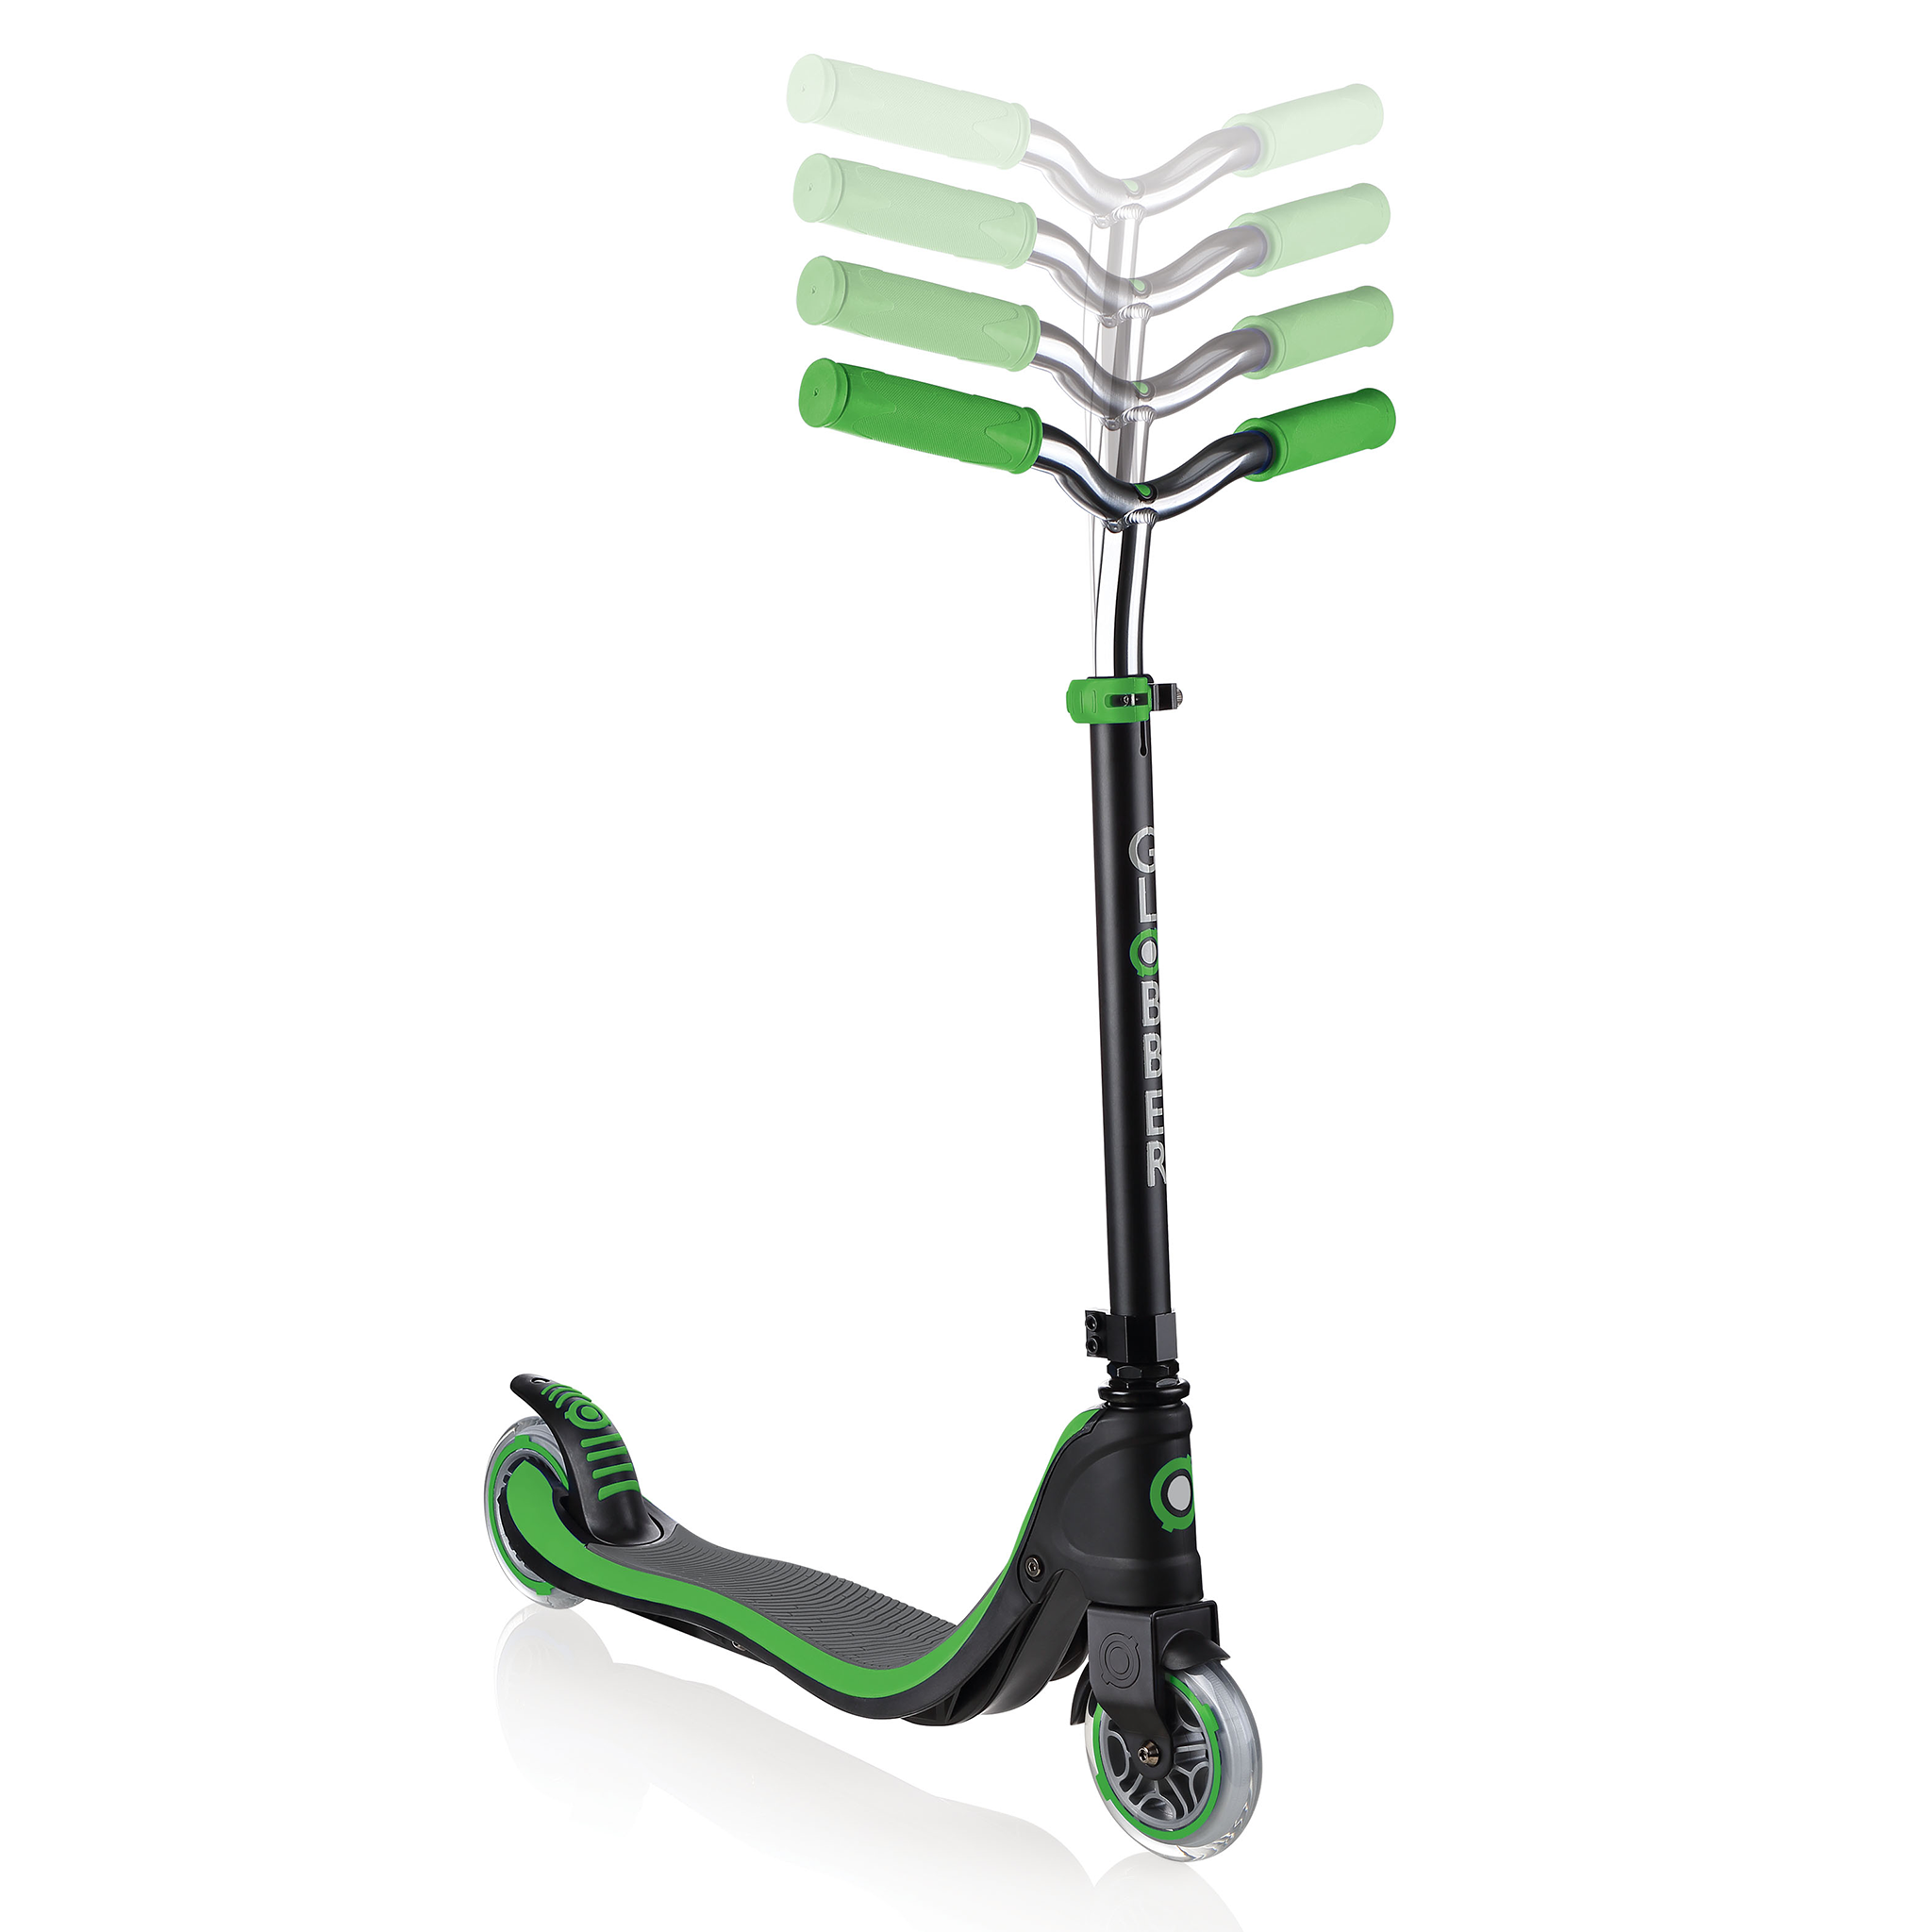 scooter for teenage boy and girl - Globber FLOW 125 1